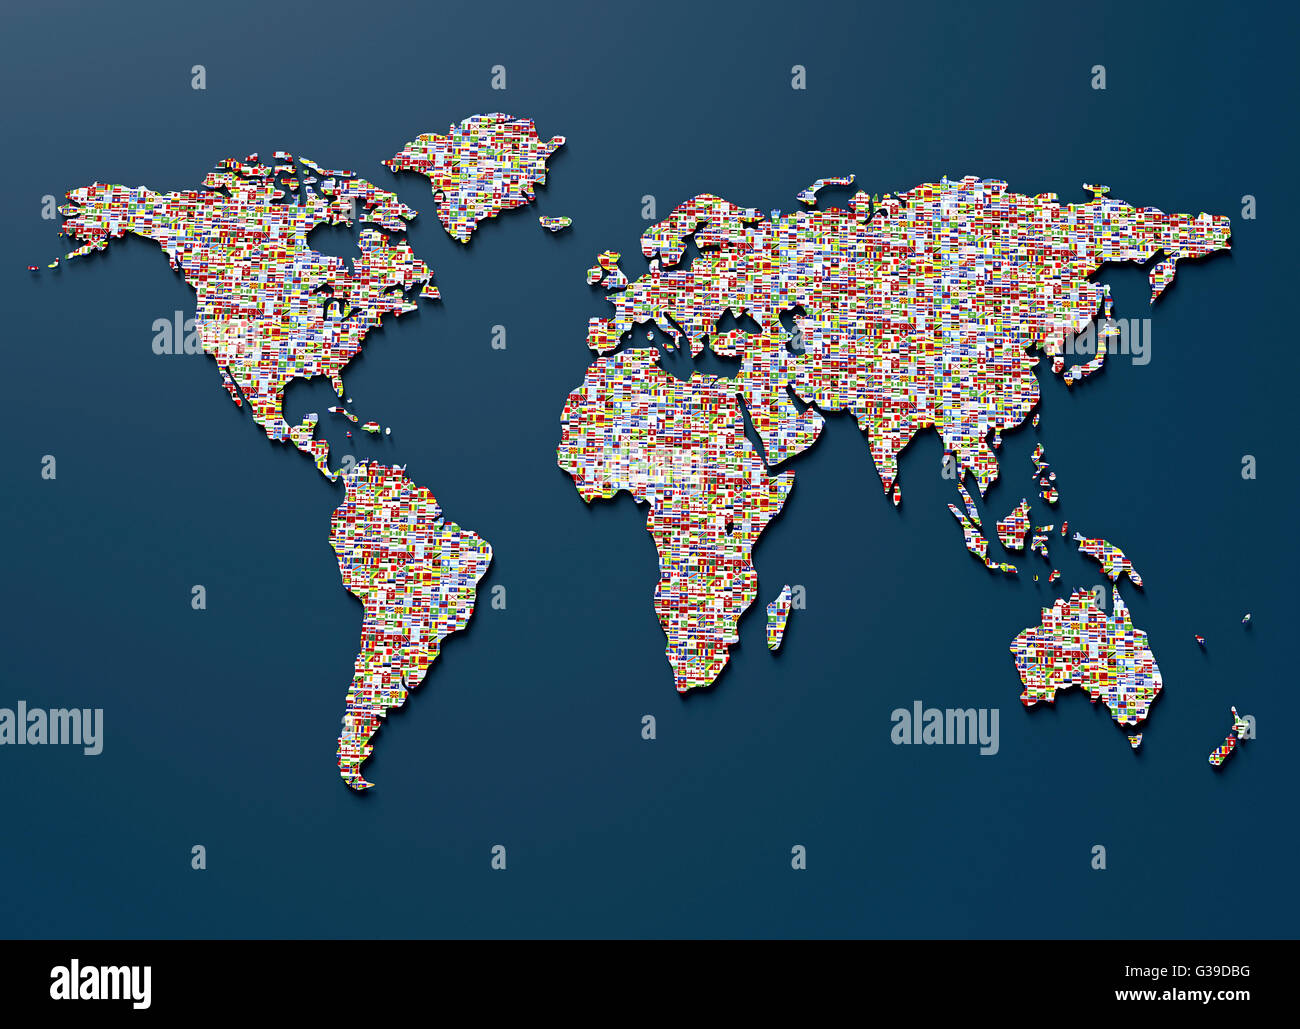 Symbol of geopolitics the world map made out of country flags symbol of geopolitics the world map made out of country flags gumiabroncs Gallery